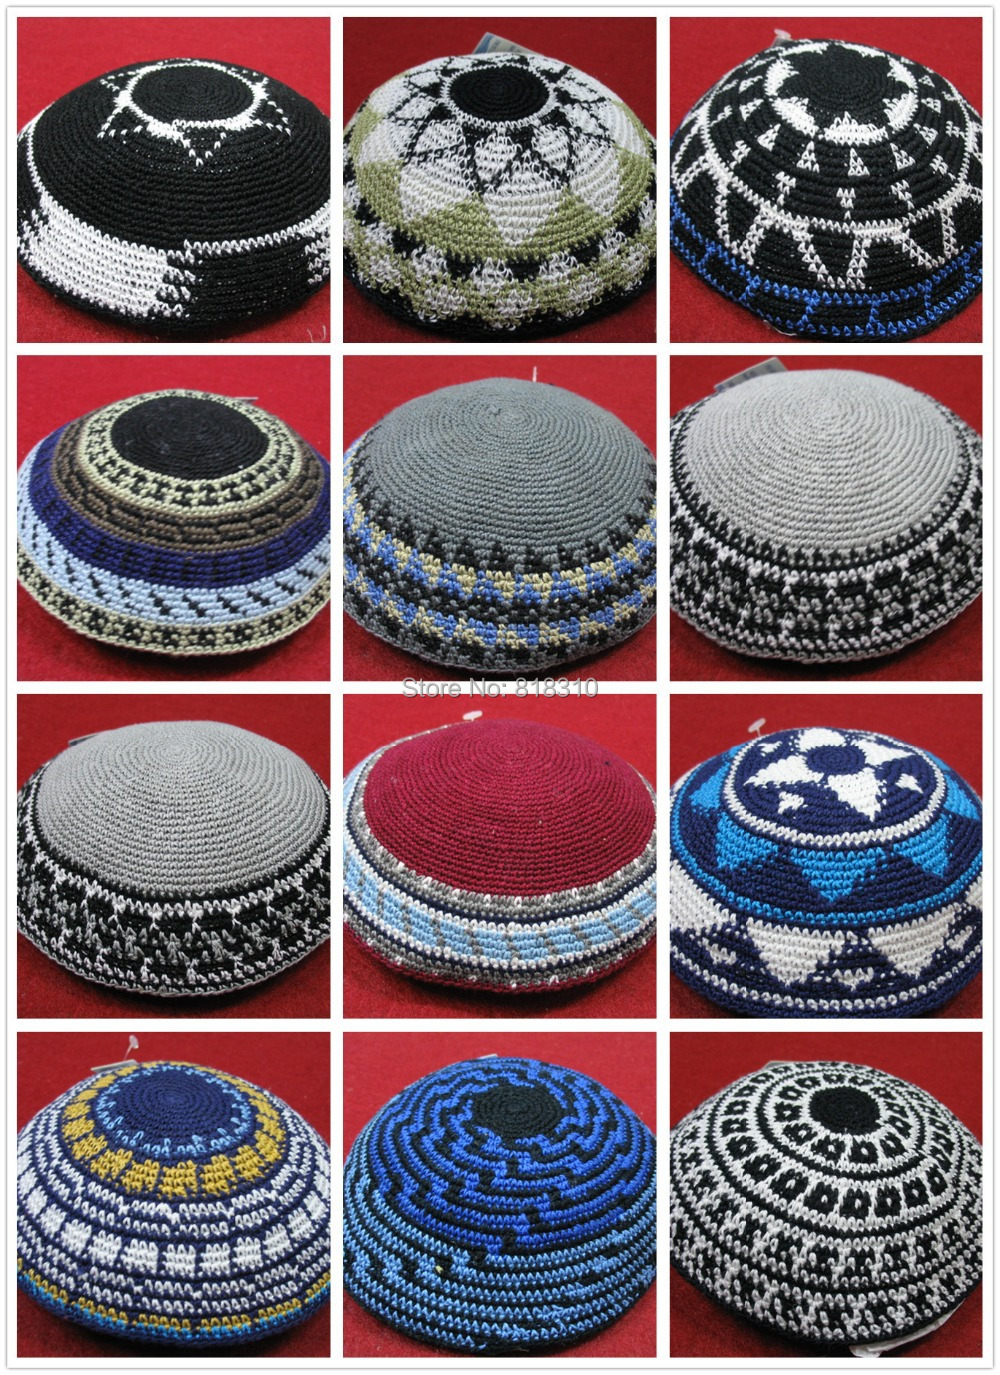 HIGH QUALITY HANDMADE KNITTED YARMULKE KIPPAH COLORED KIPPOT 3PIECES ...